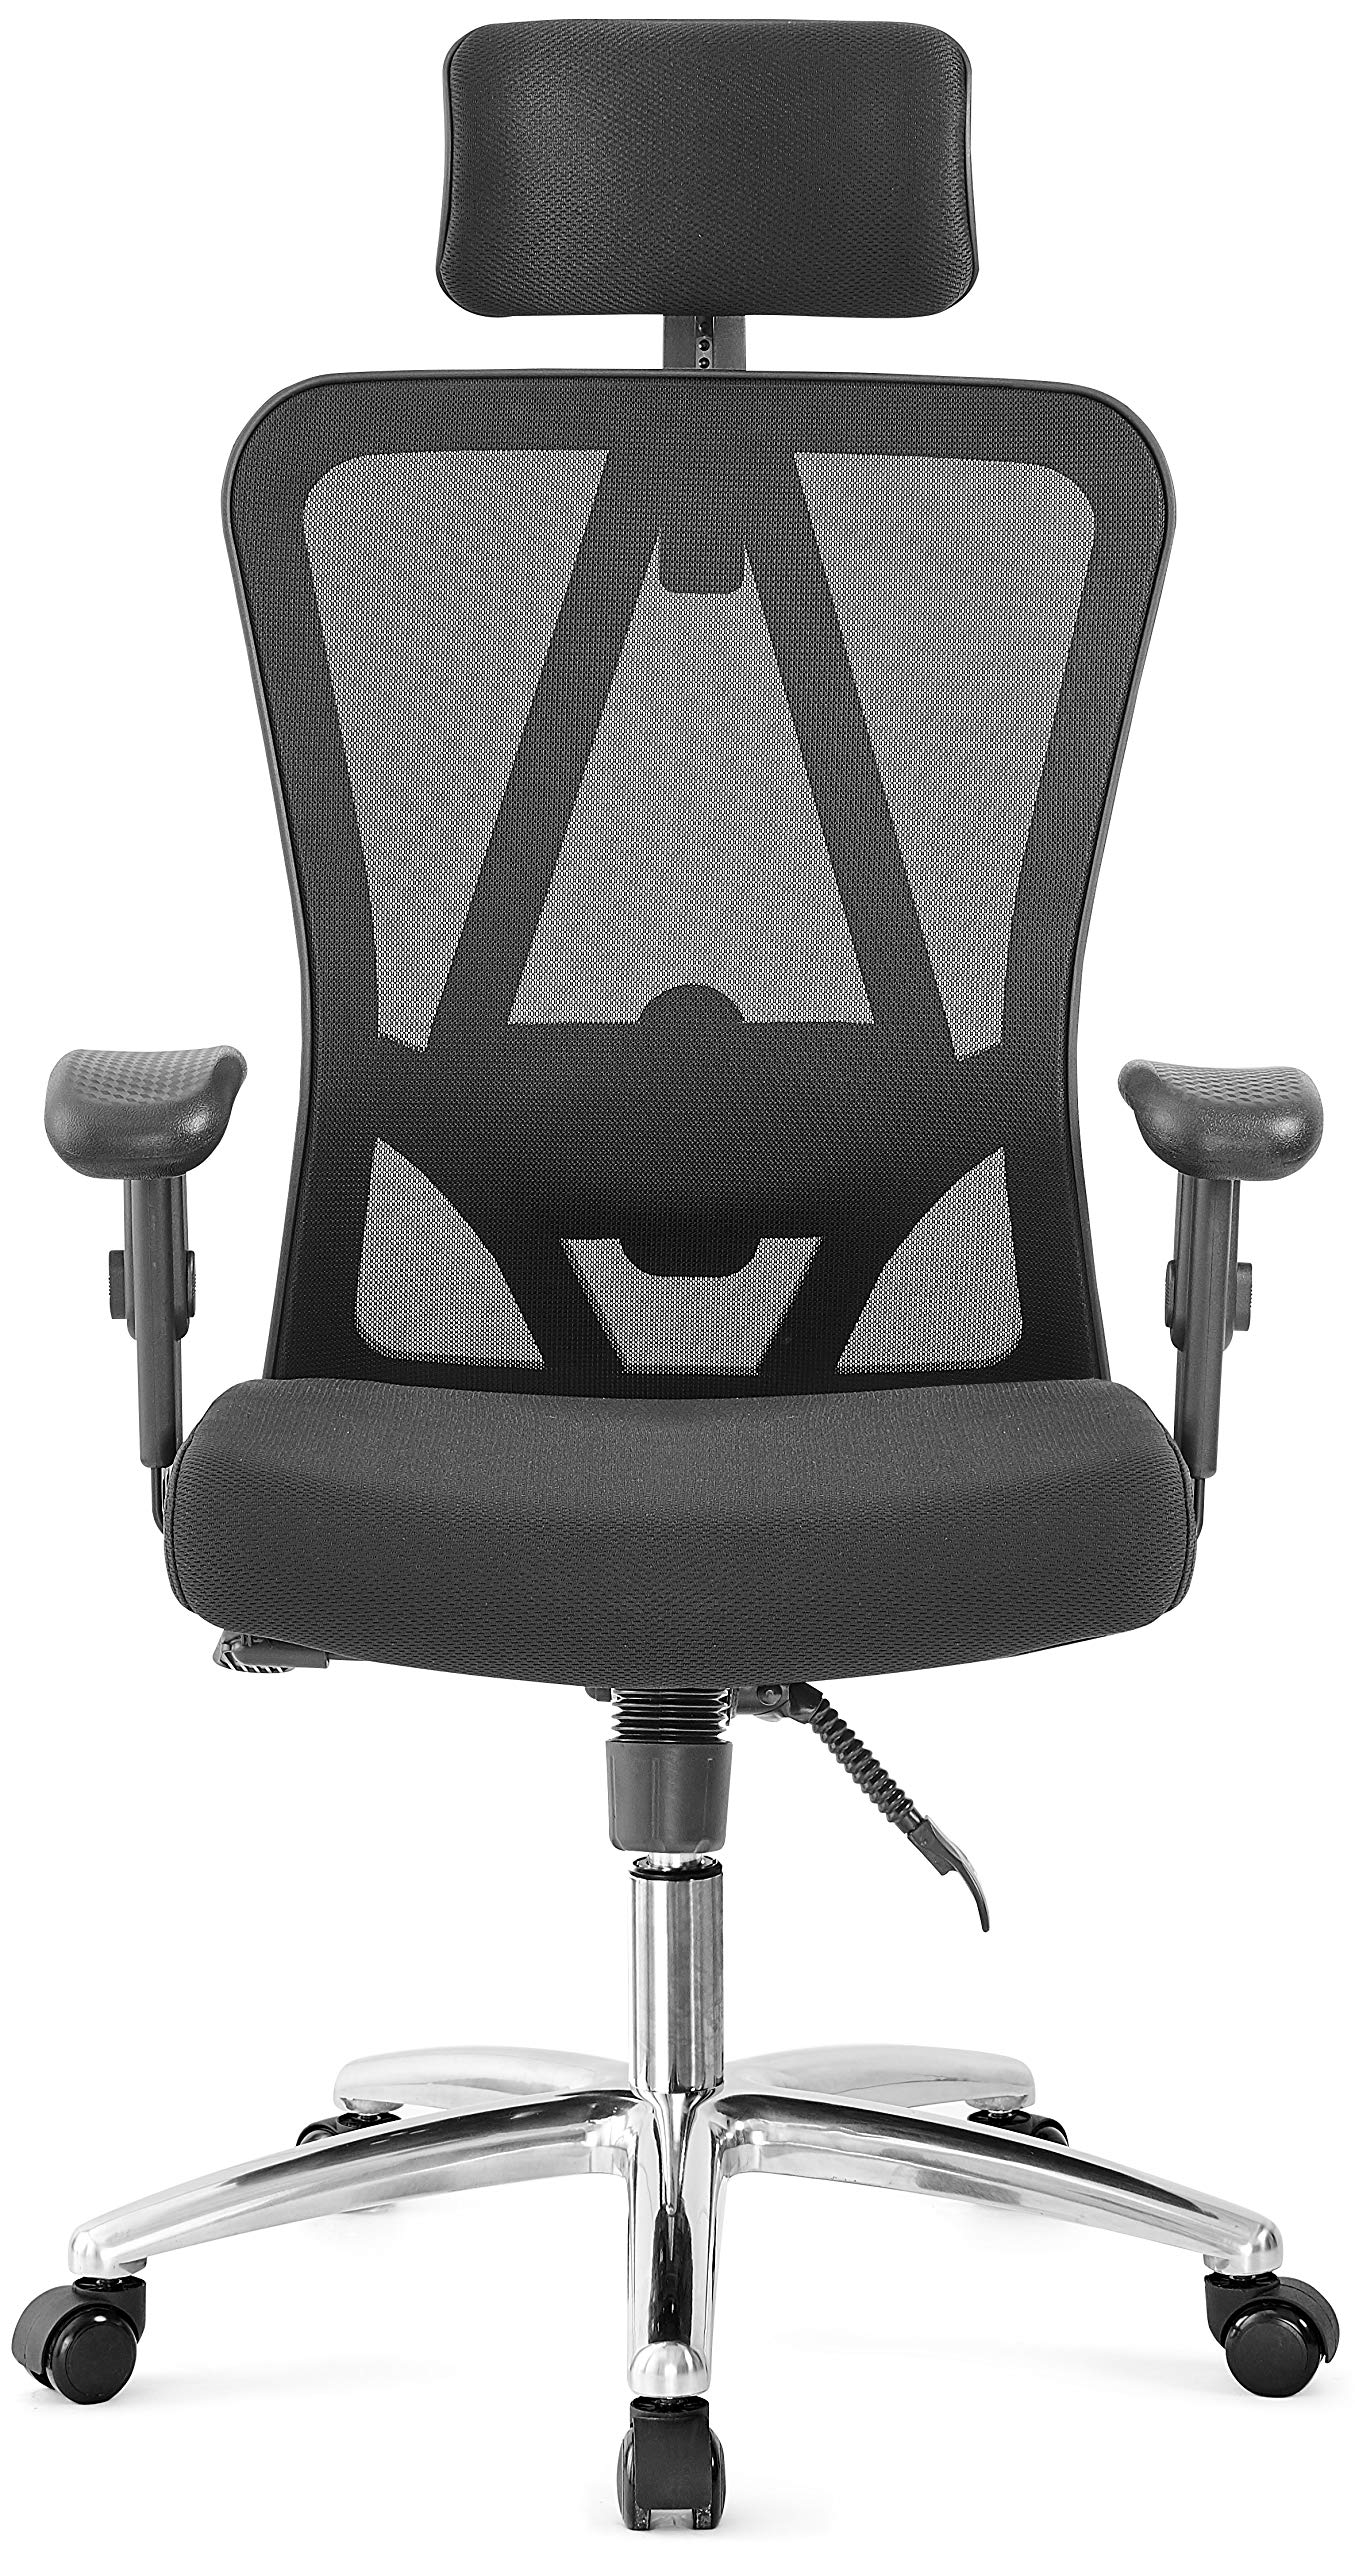 Ergonomic Office Chair, Ticova Breathable Mesh Chair - High Back Reclinable Desk Chair Computer Chair- Adujustable Headrest, Armrest and Lumbar Support - Thick Shaping Foam Seat Cushion(Black)